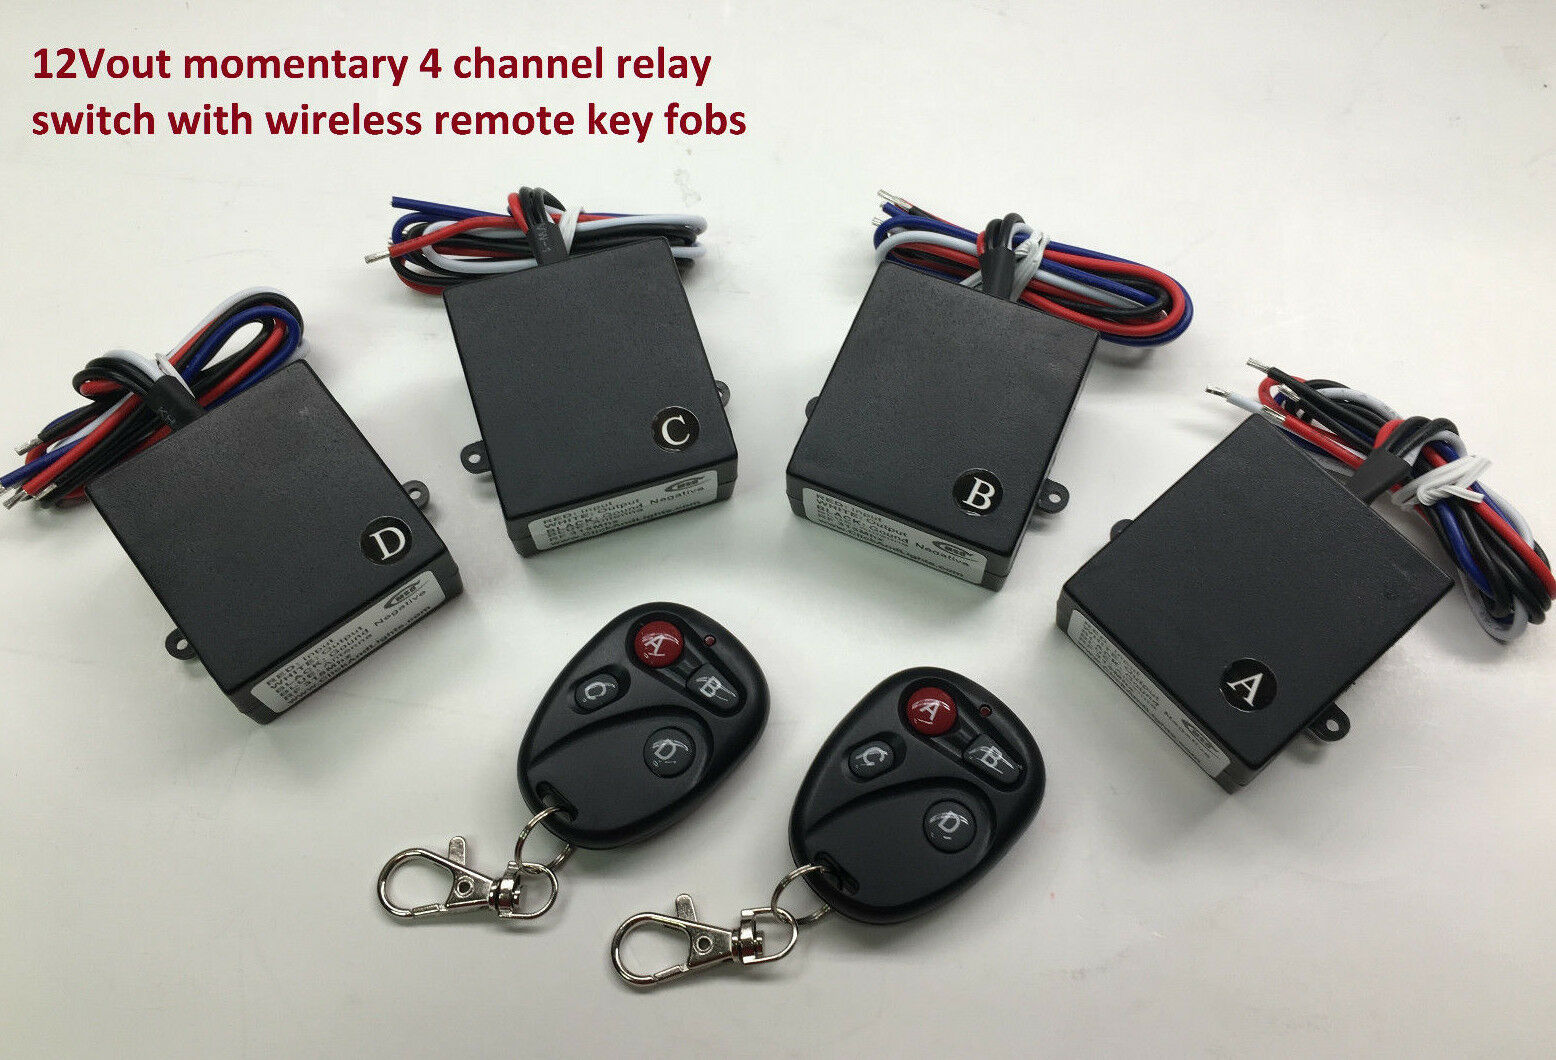 12v 4 Channels Momentary Relay Remote Control Switch Wire...